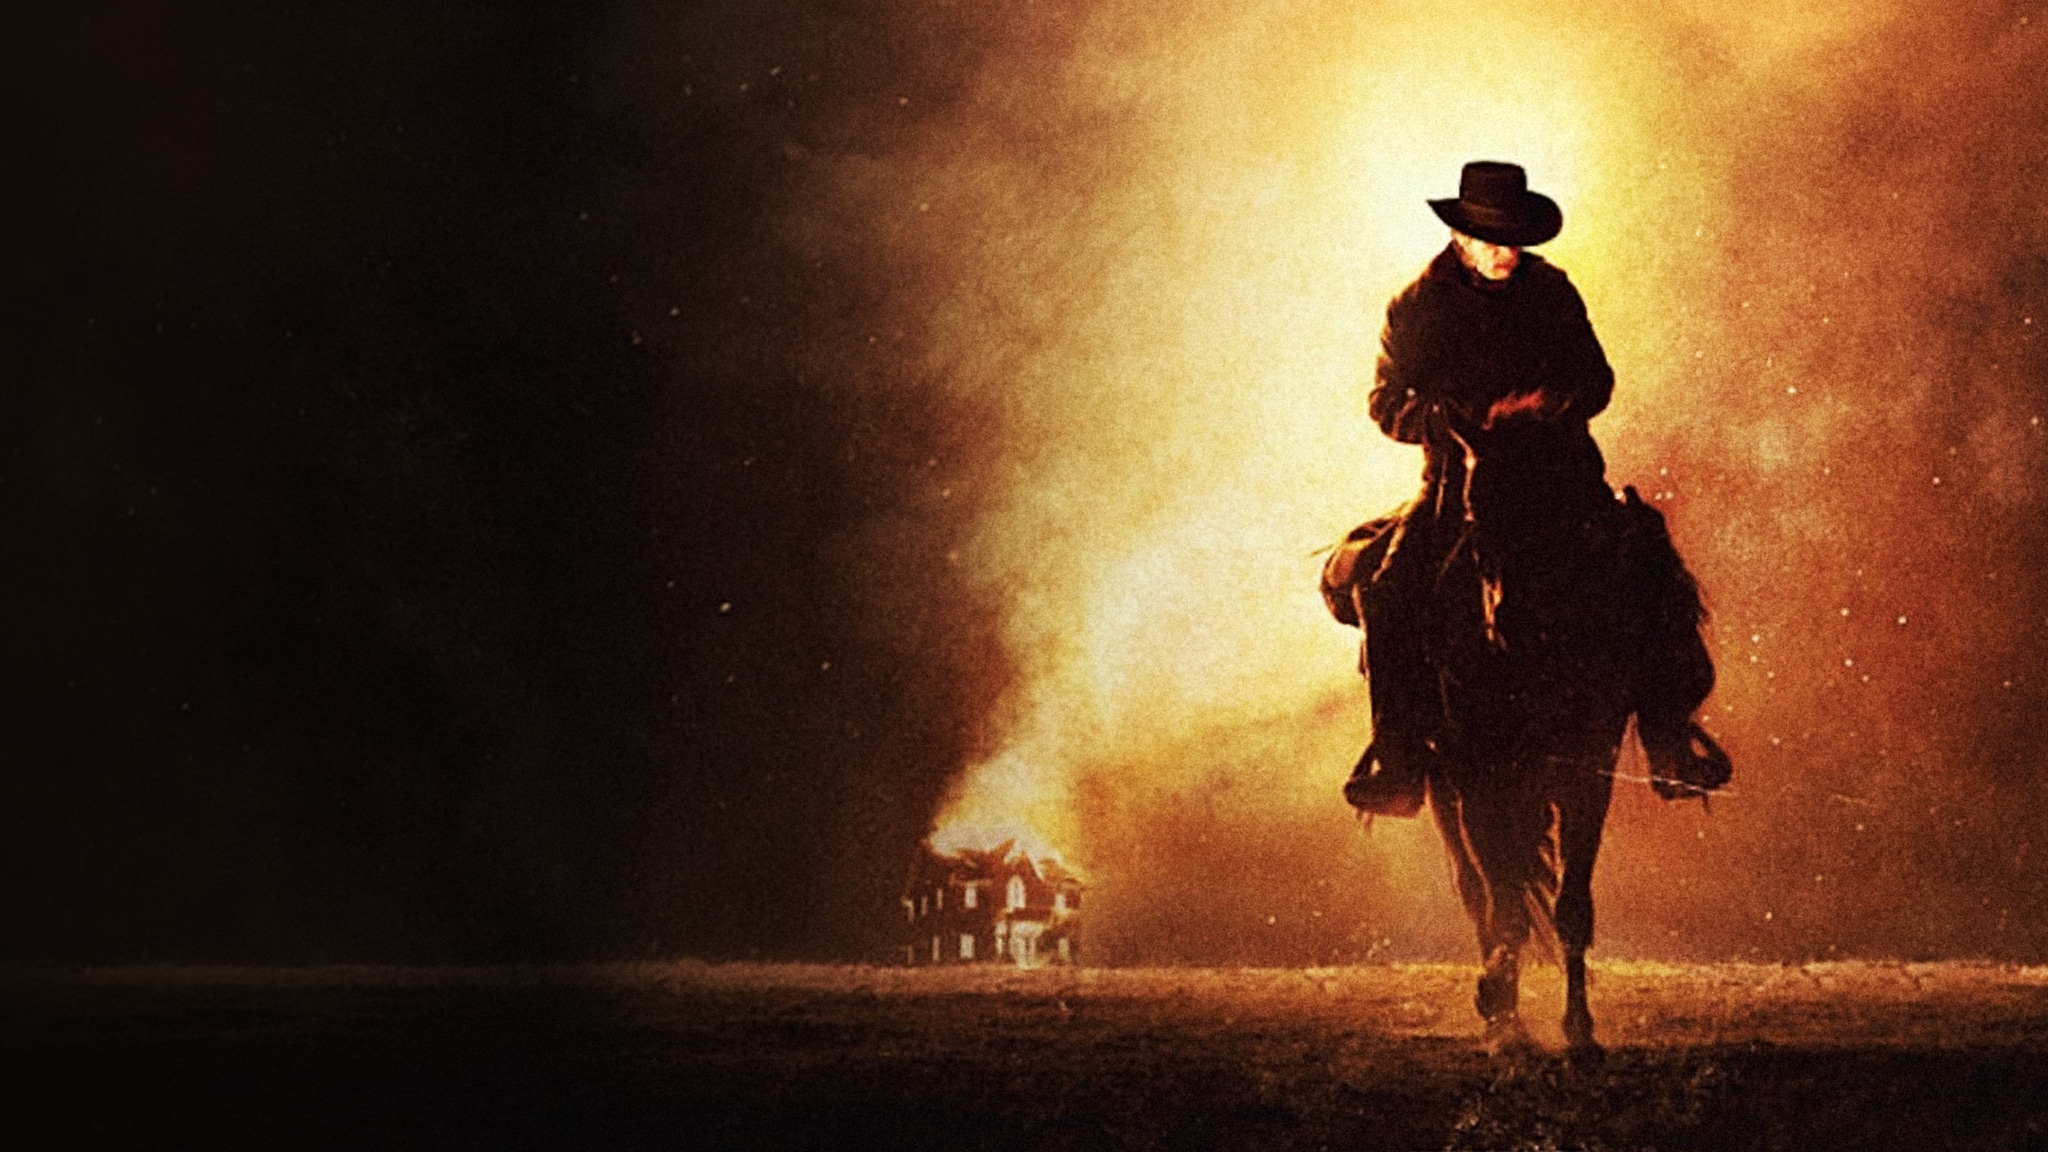 Rai Movie The Homesman